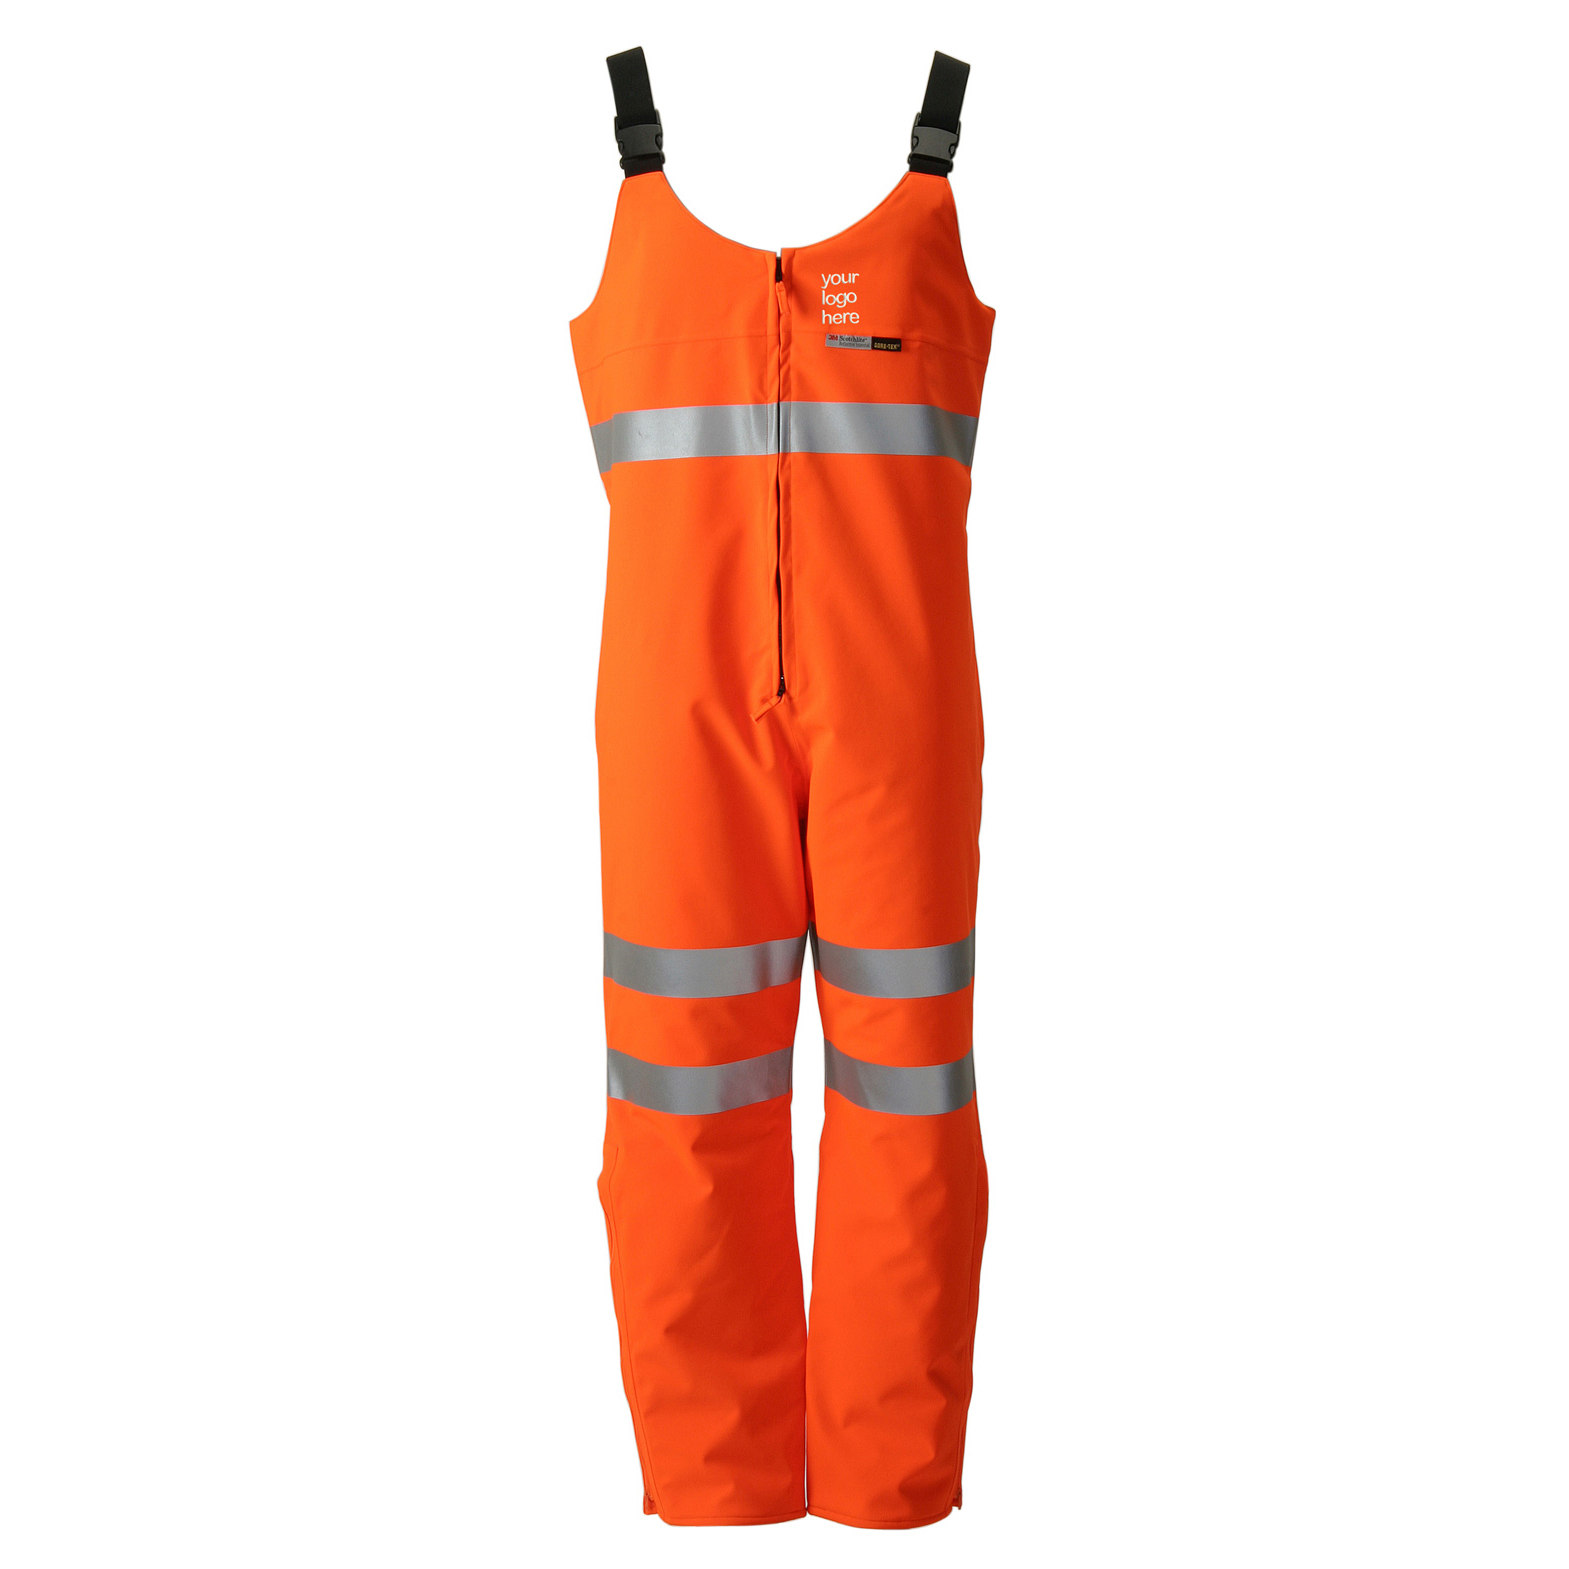 B-Seen Gore-Tex Foul Weather Salopette Orange M Ref GTHV14ORM *Up to 3 Day Leadtime*